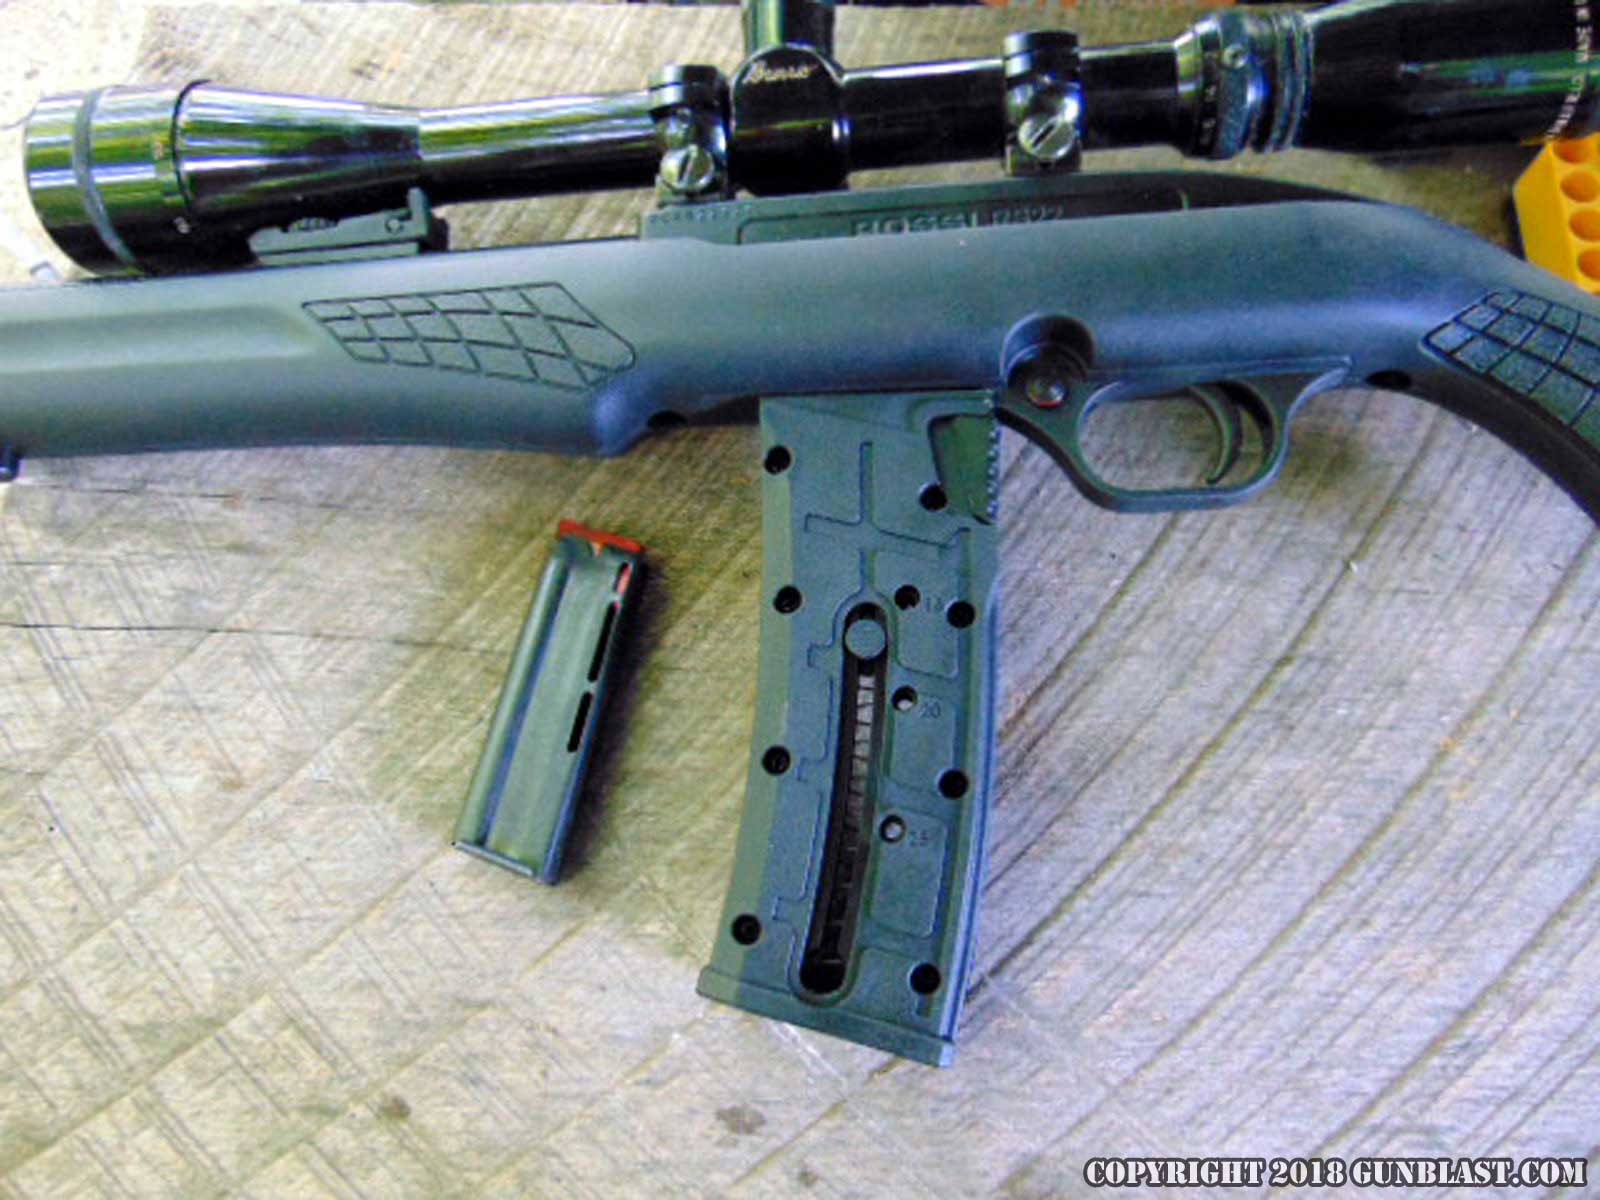 Rossi RS22 Semi-Automatic Rifle Chambered for the 22 Long Rifle